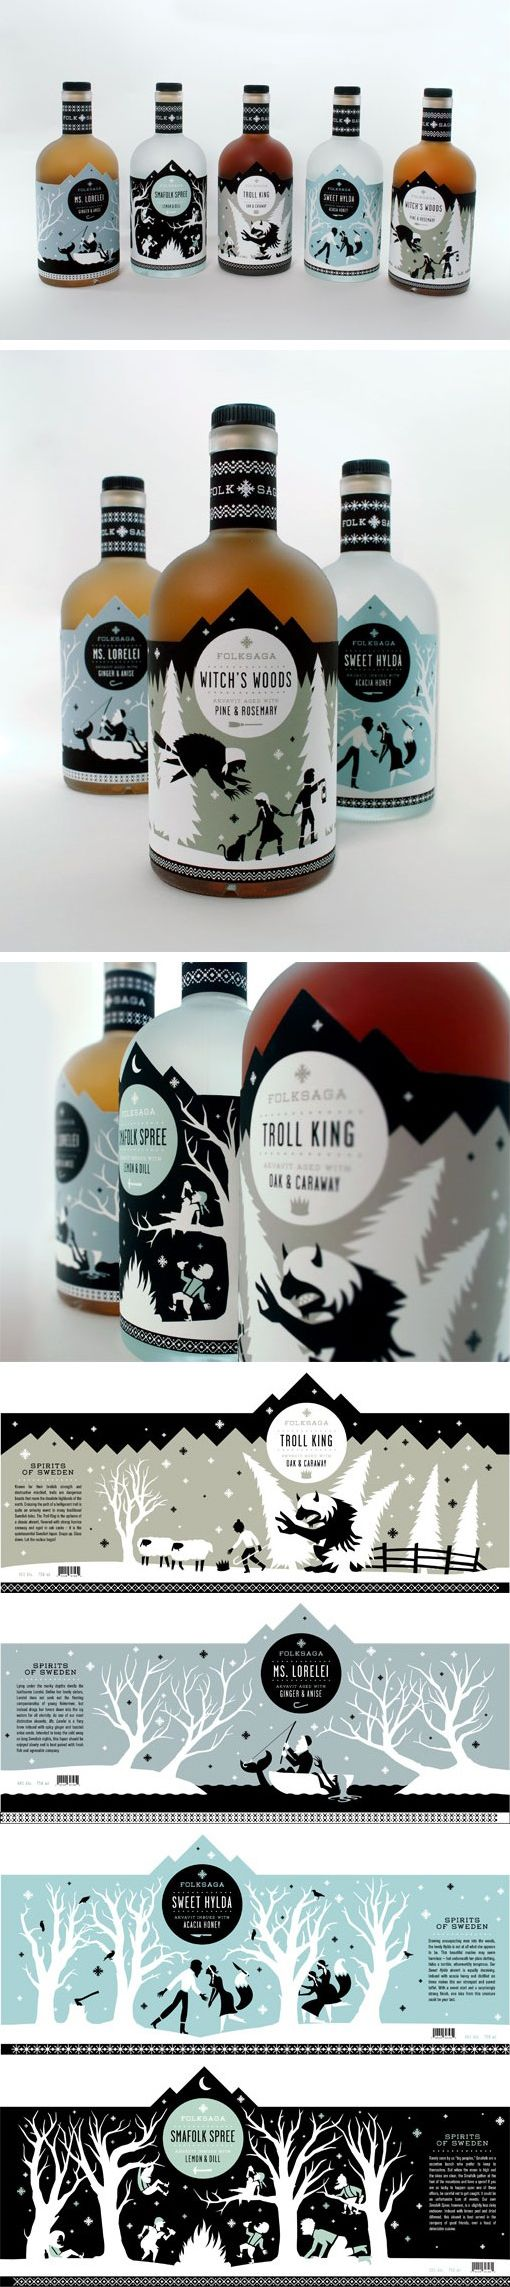 Folksaga 酒與童話的相遇 Not sure if this is to drink but love the fairy tale labels